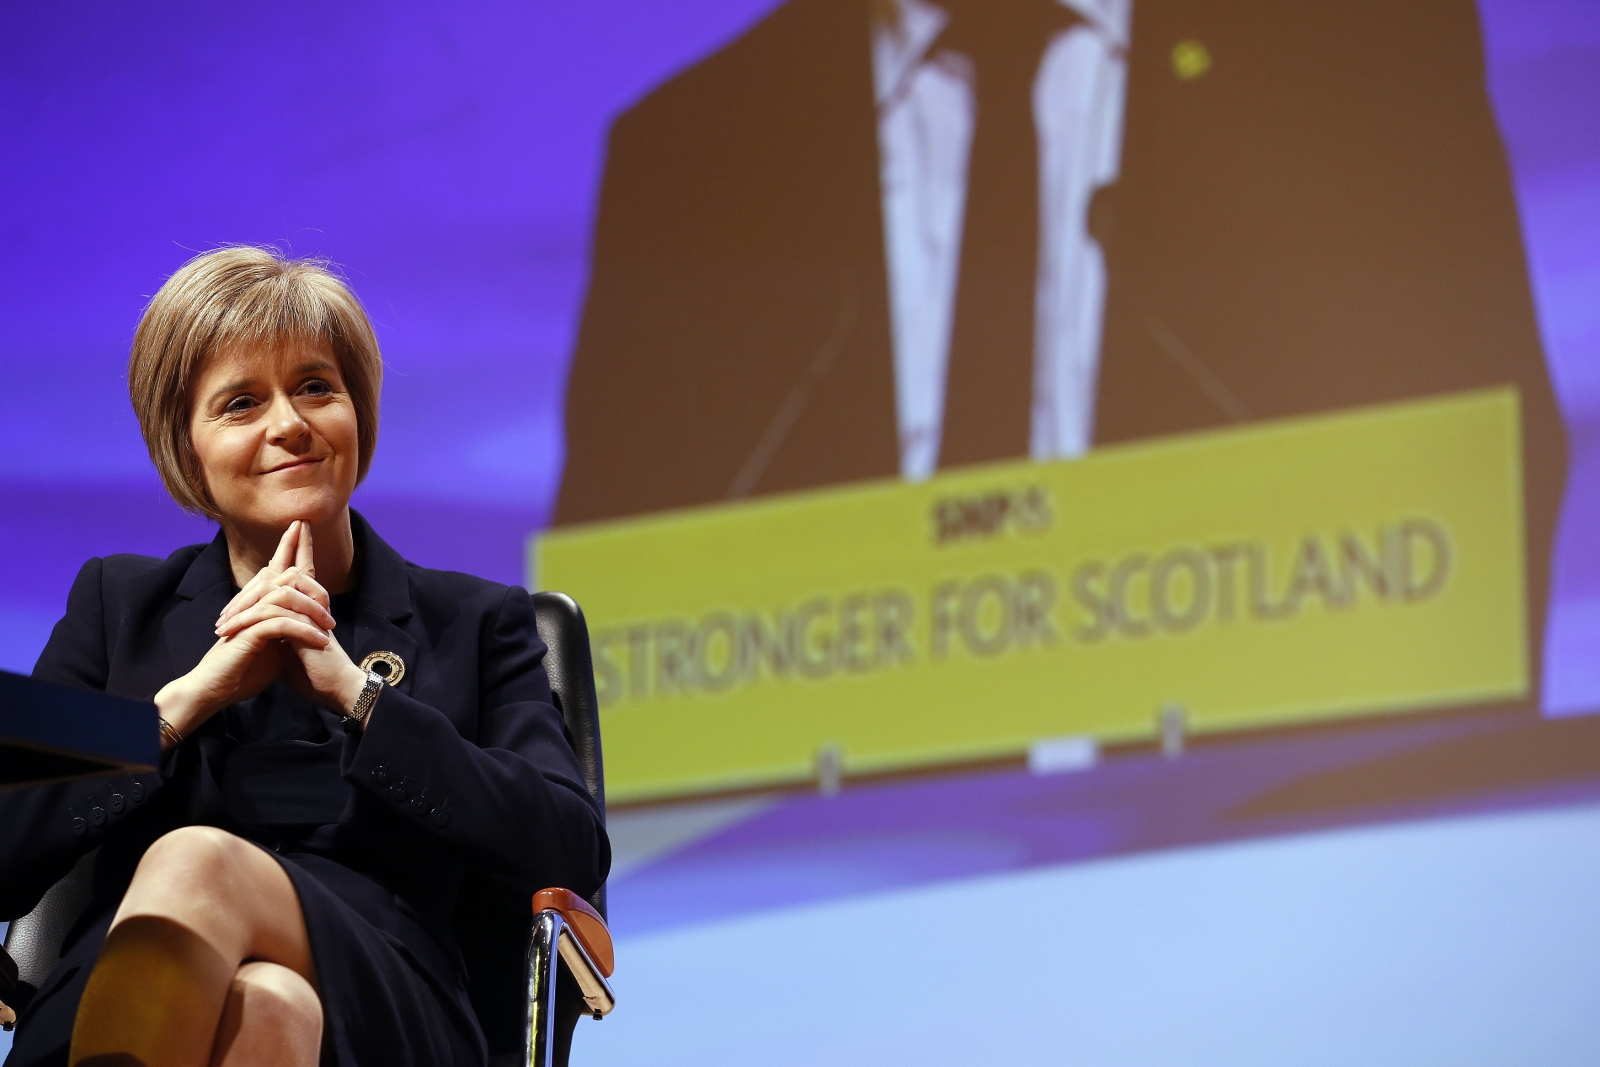 Newly elected party leader Nicola Sturgeon smiles at the Scottish Nationalist Party (SNP) annual conference in Perth November 15, 2014.